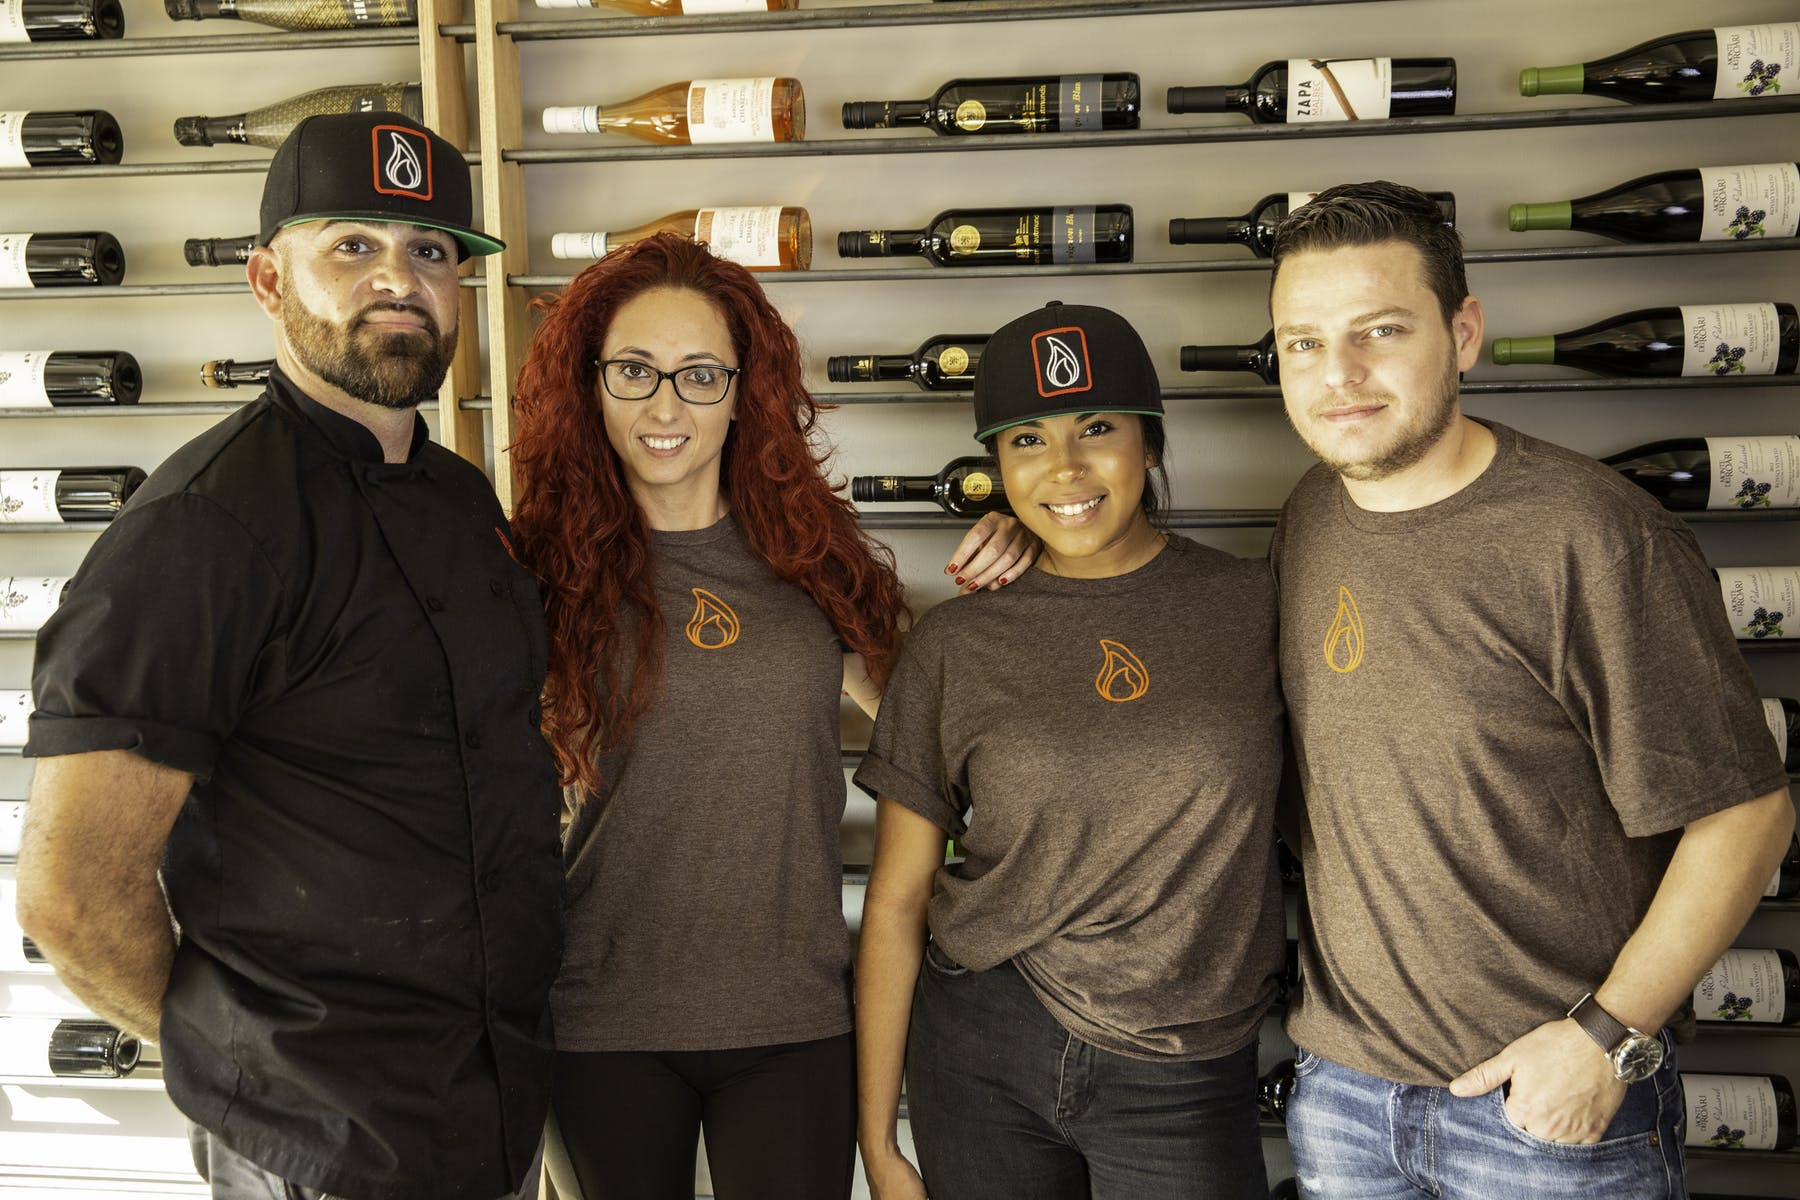 4 employees in logo shirts standing next to each other in front of a wall with wine bottles